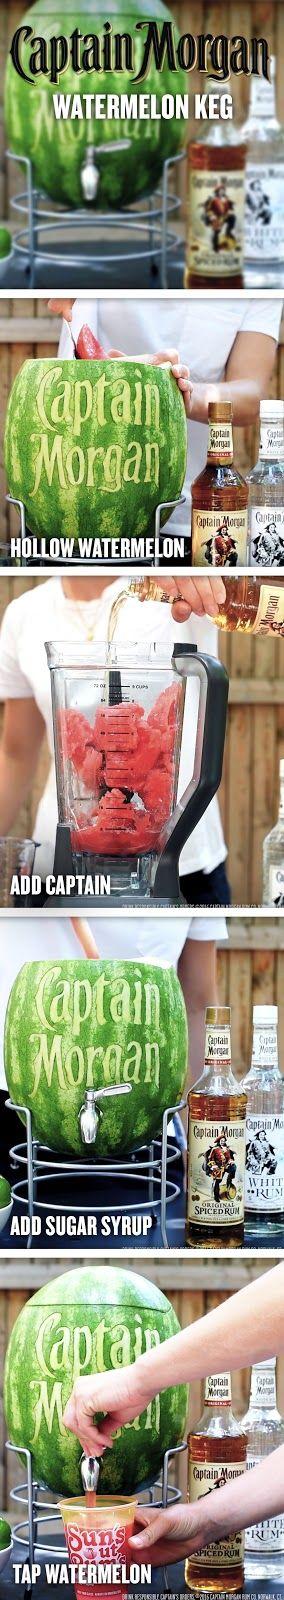 The Captain is bringing some fun to summer cocktails. To make a Captain's keg for you and 9 friends, combine 15 oz Captain Morgan Original Spiced Rum, 30 oz watermelon juice, 5 oz lime juice, and 5 oz sugar syrup in a hollowed out watermelon. Grab a cup and toast to summer, friends, and spiced rum.